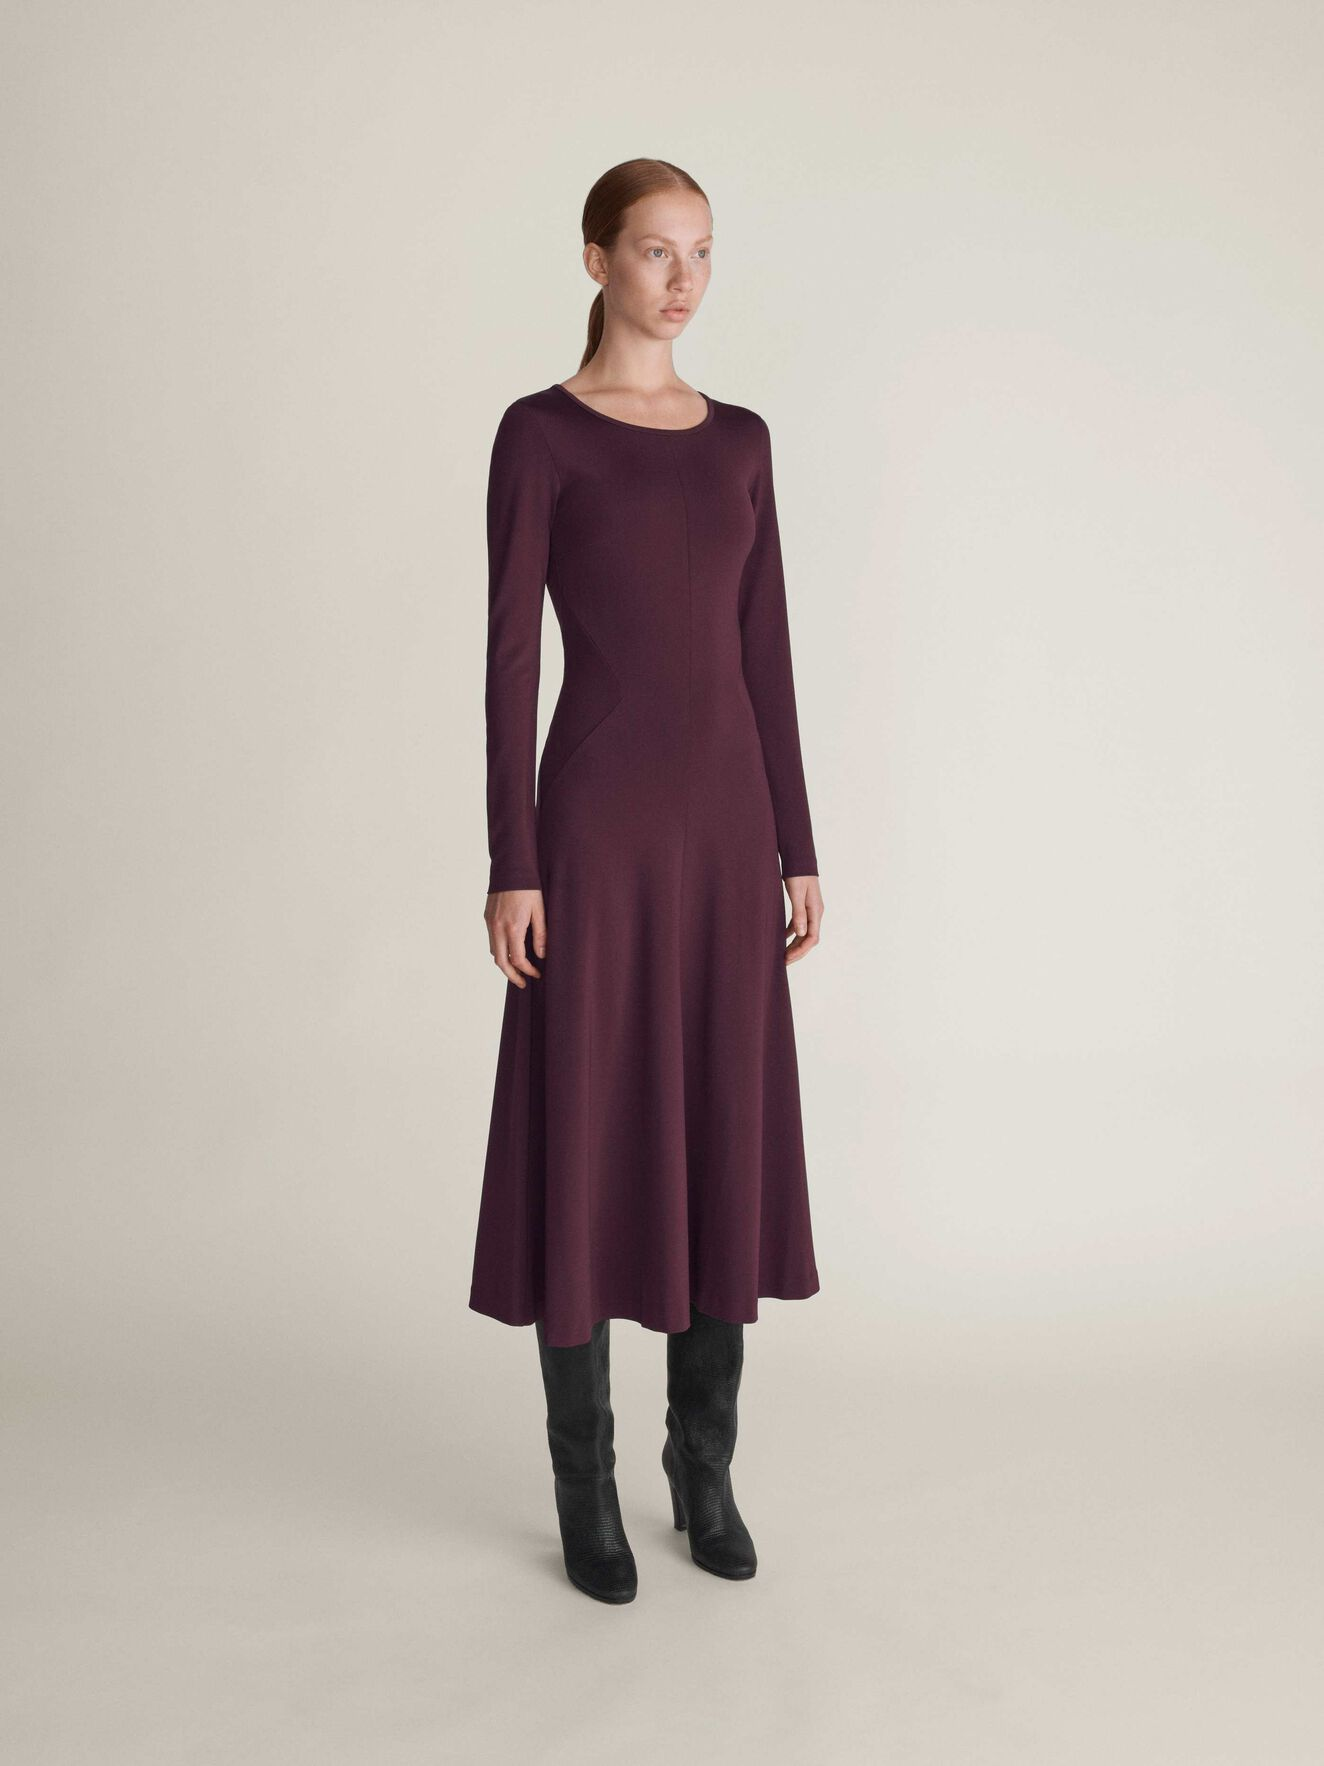 Moby Dress in Hot Rust from Tiger of Sweden